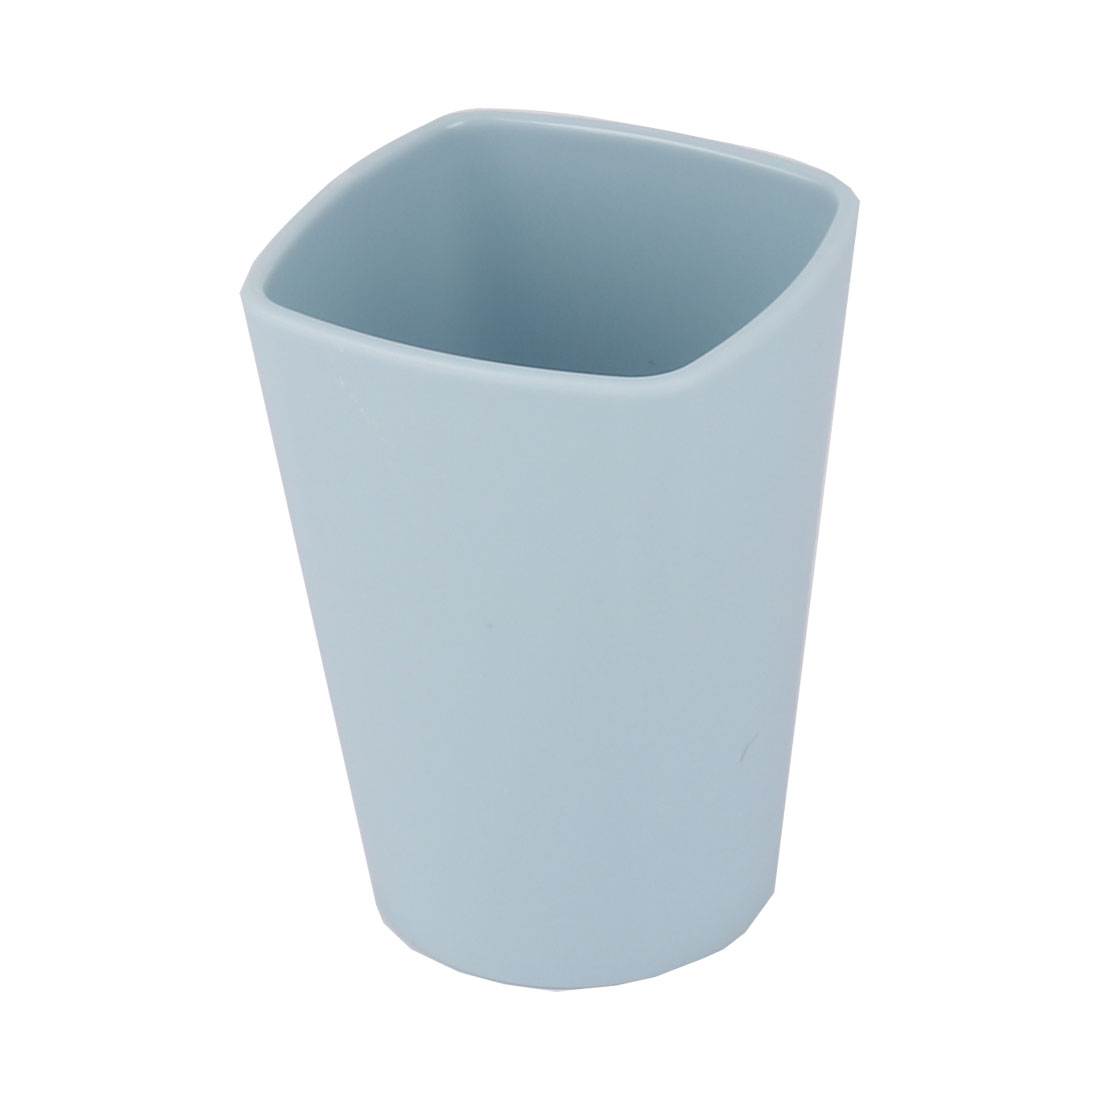 Household Bathroom Square Plastic Toothbrush Toothpaste Gargle Cup Pale Blue